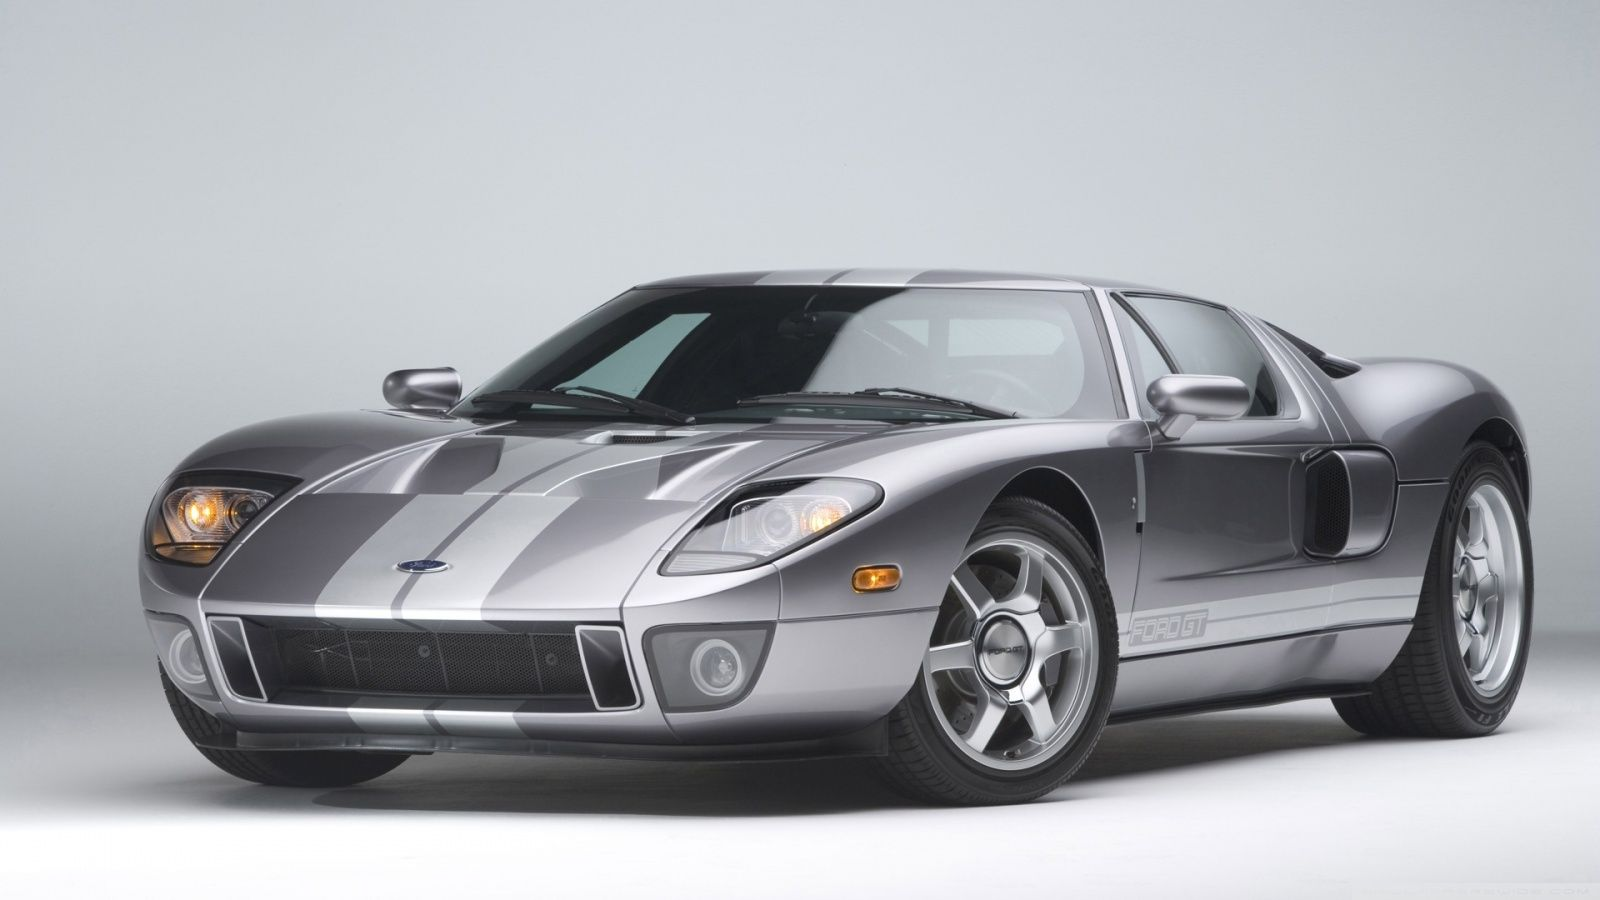 ford gt cool classic sport cars pinterest. Black Bedroom Furniture Sets. Home Design Ideas